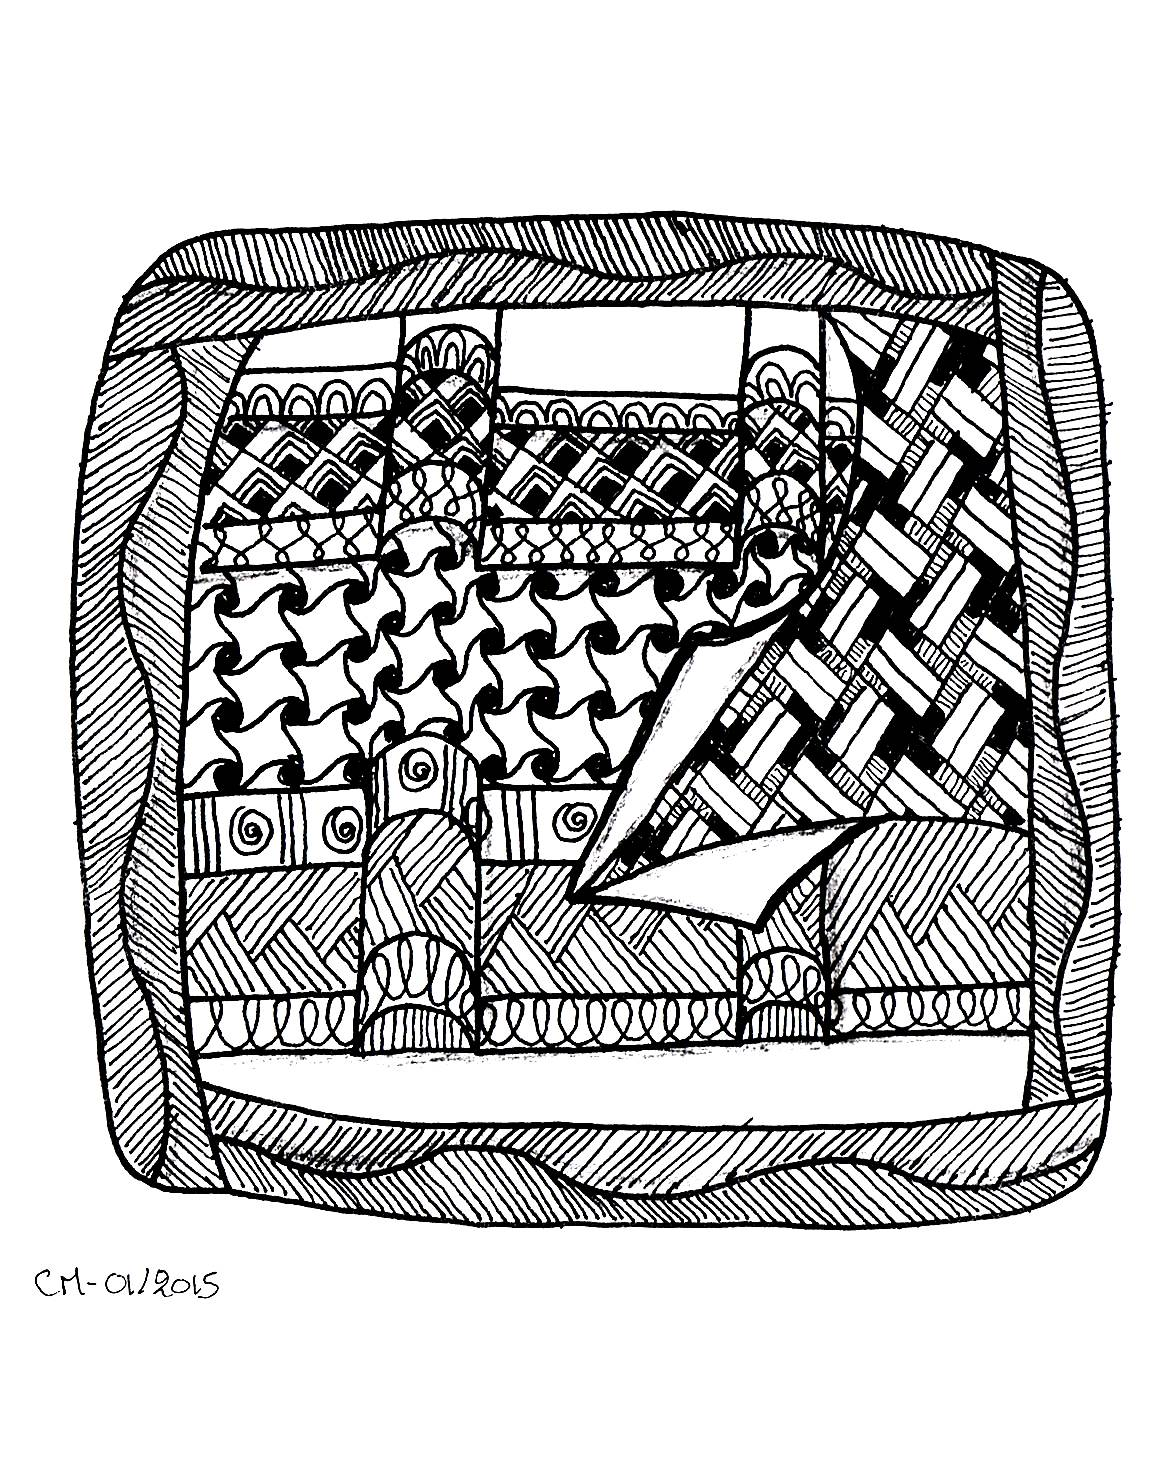 'Some tangles', exclusive zentangle coloring page See the original work